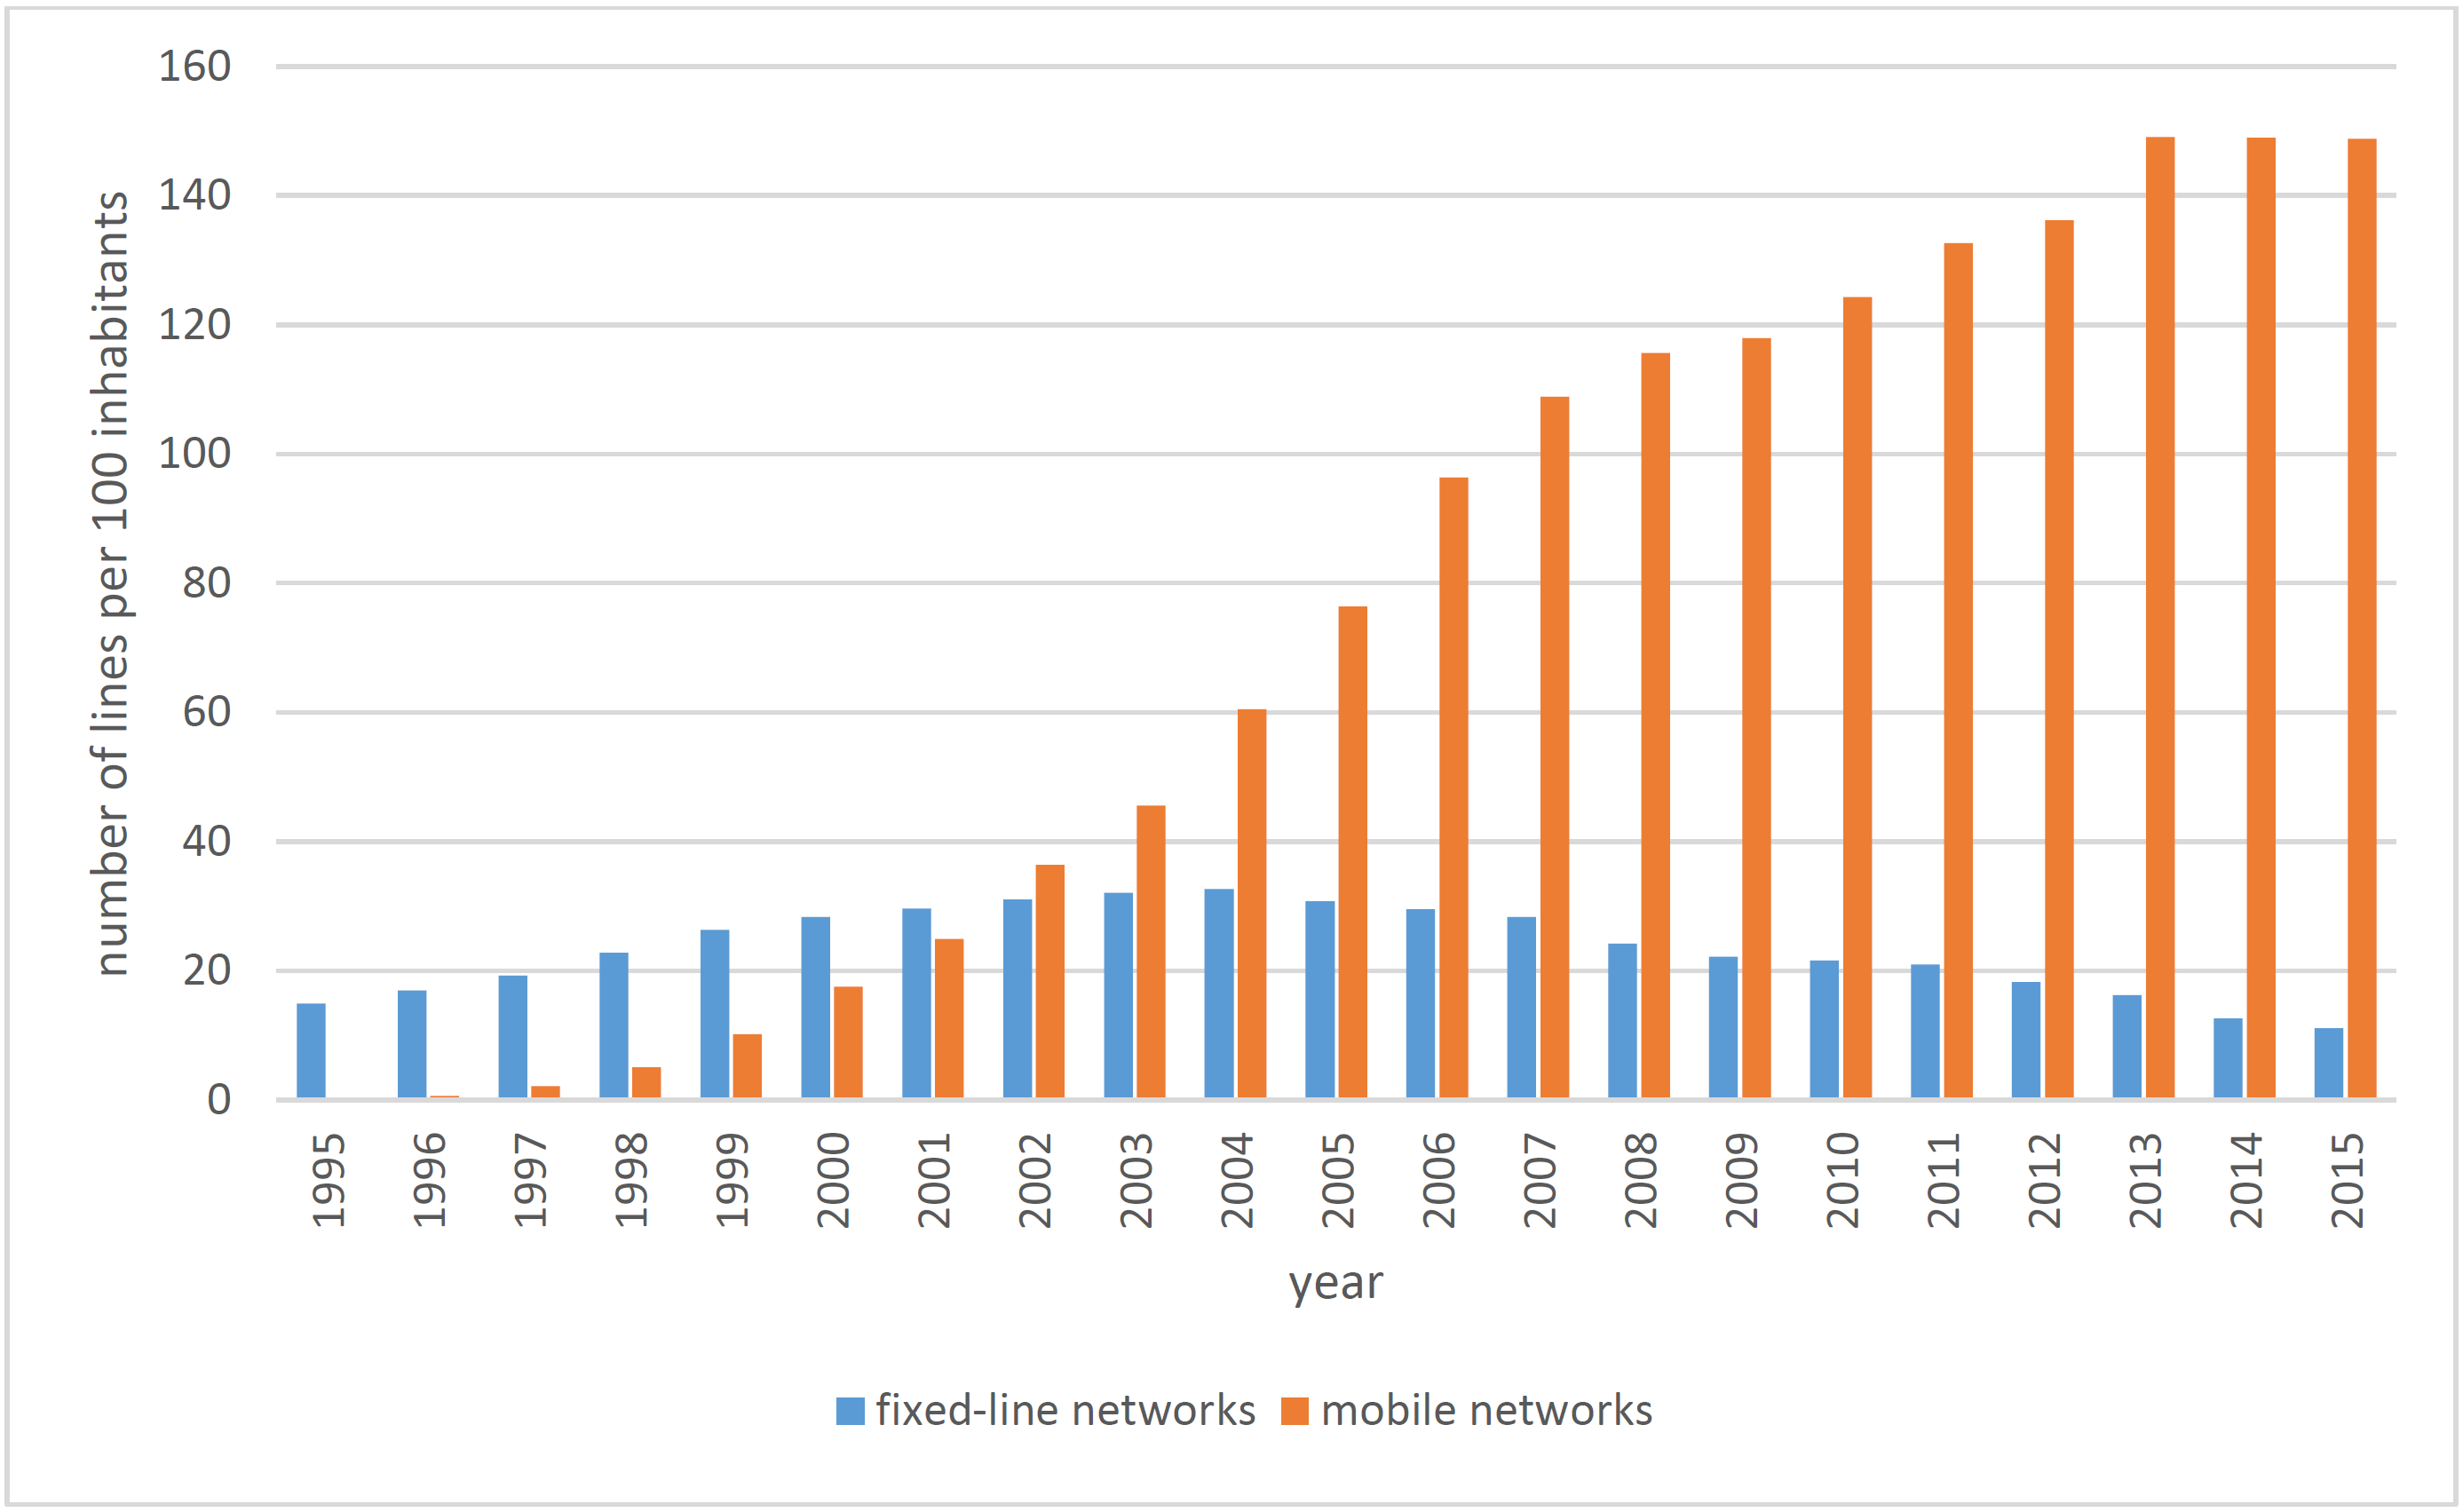 Figure 1 Telephone density in Poland during the past two decades)